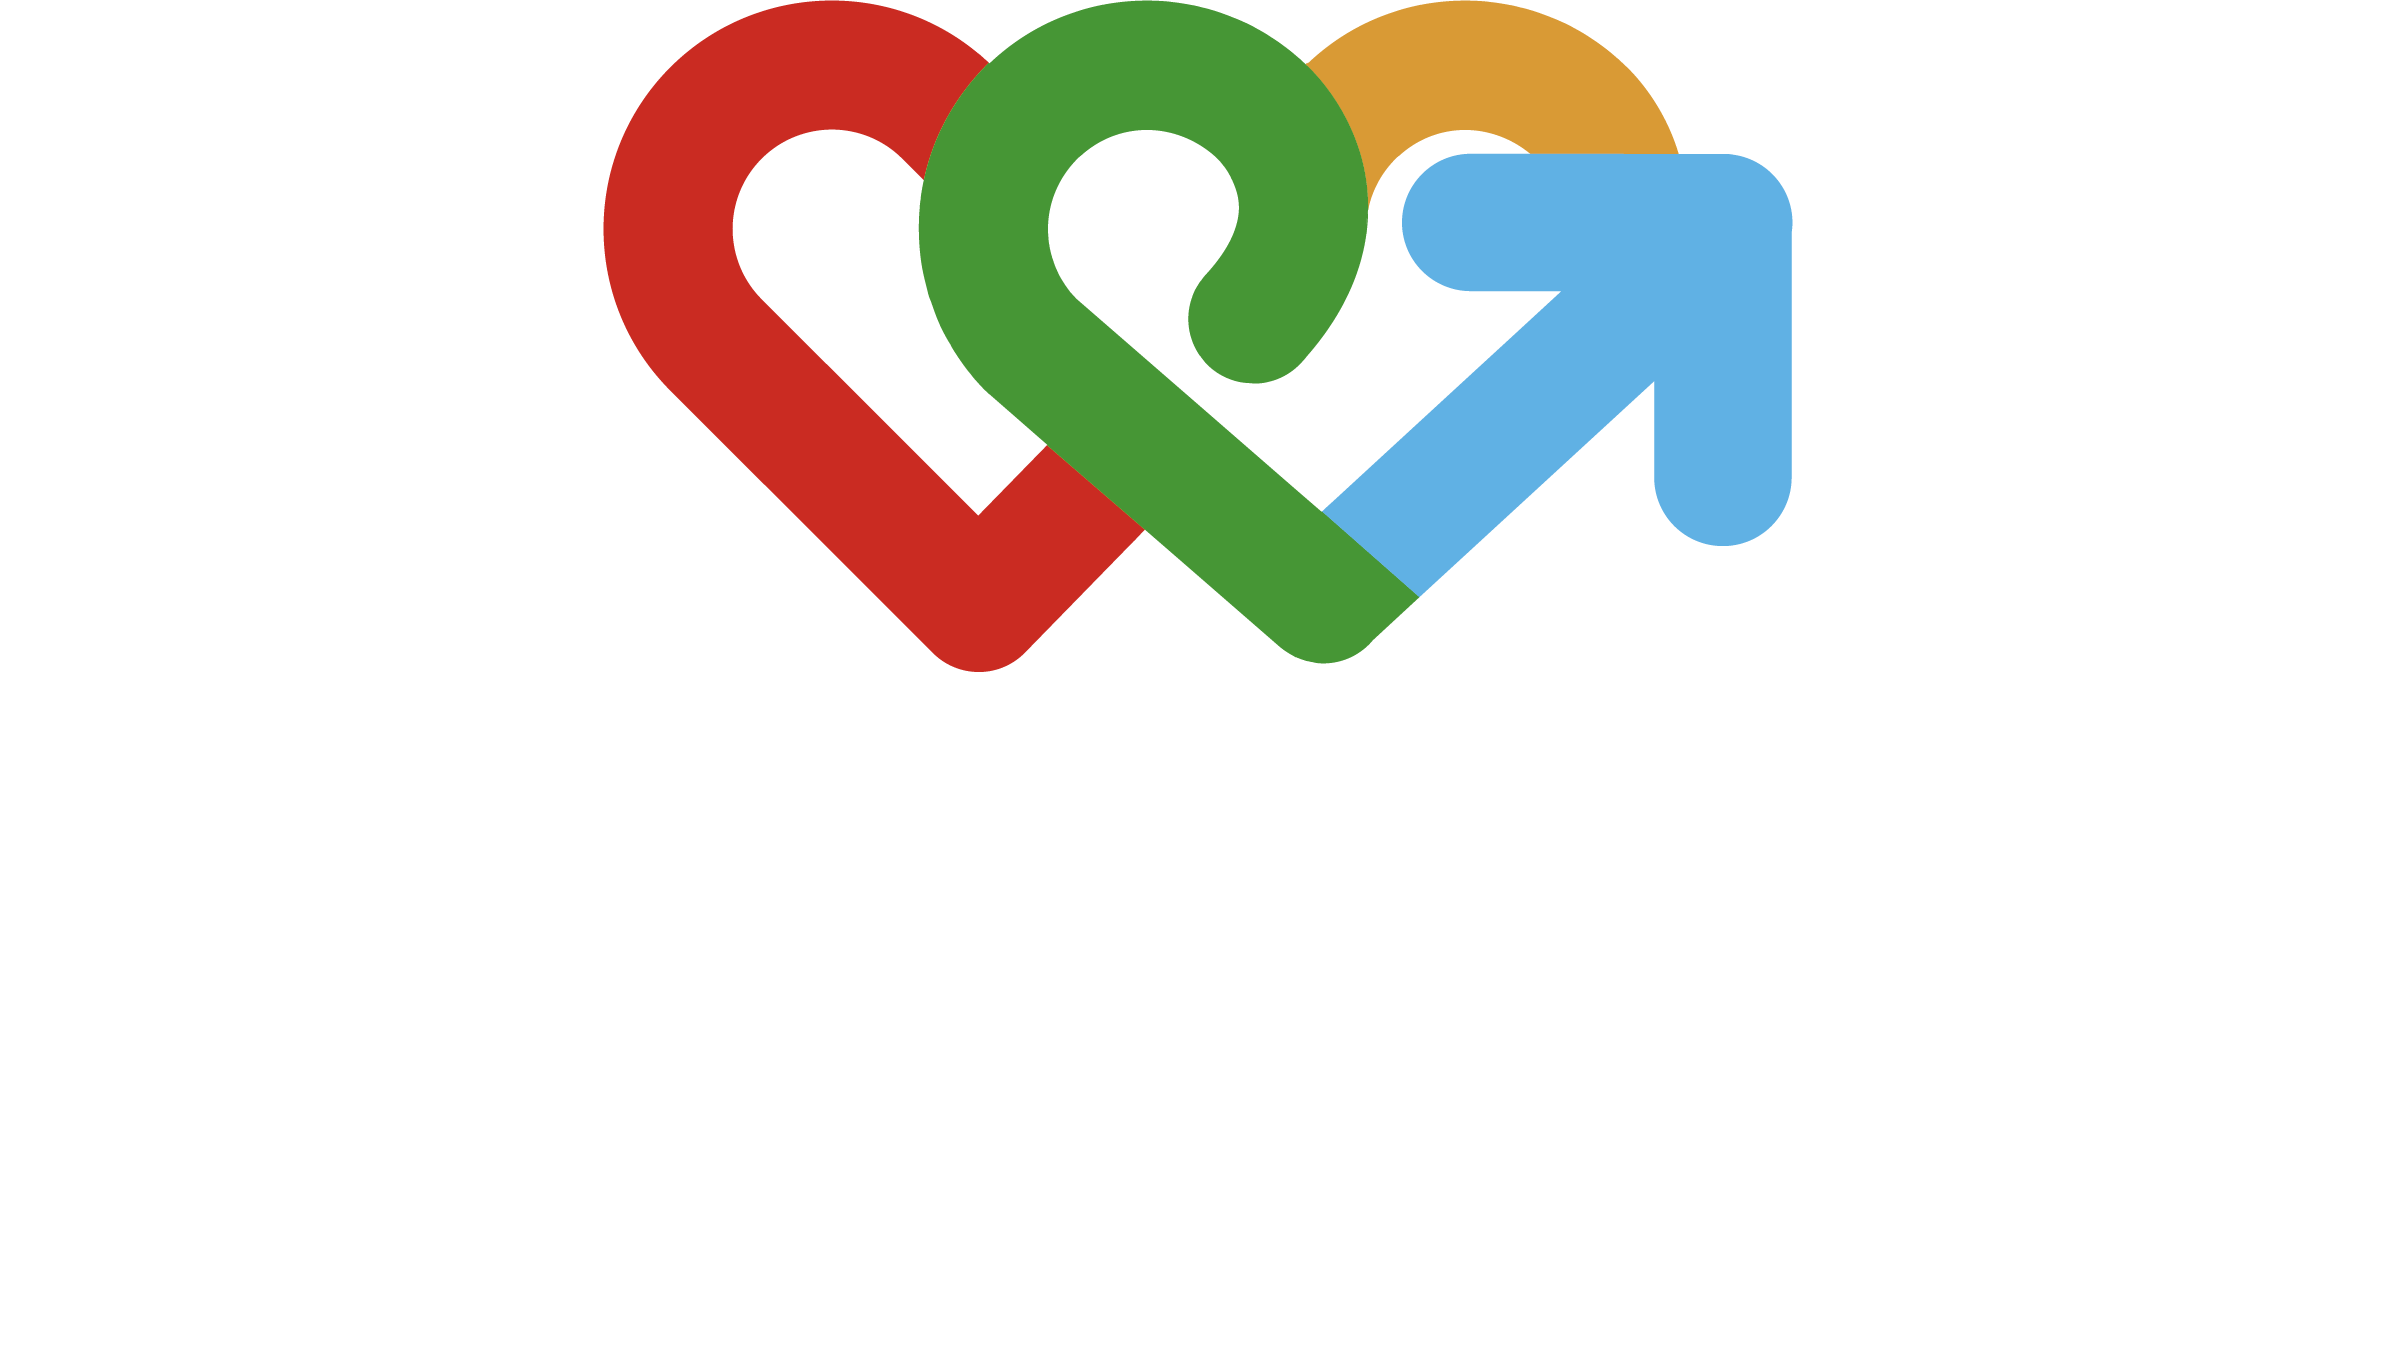 Wellbeing Liverpool logo